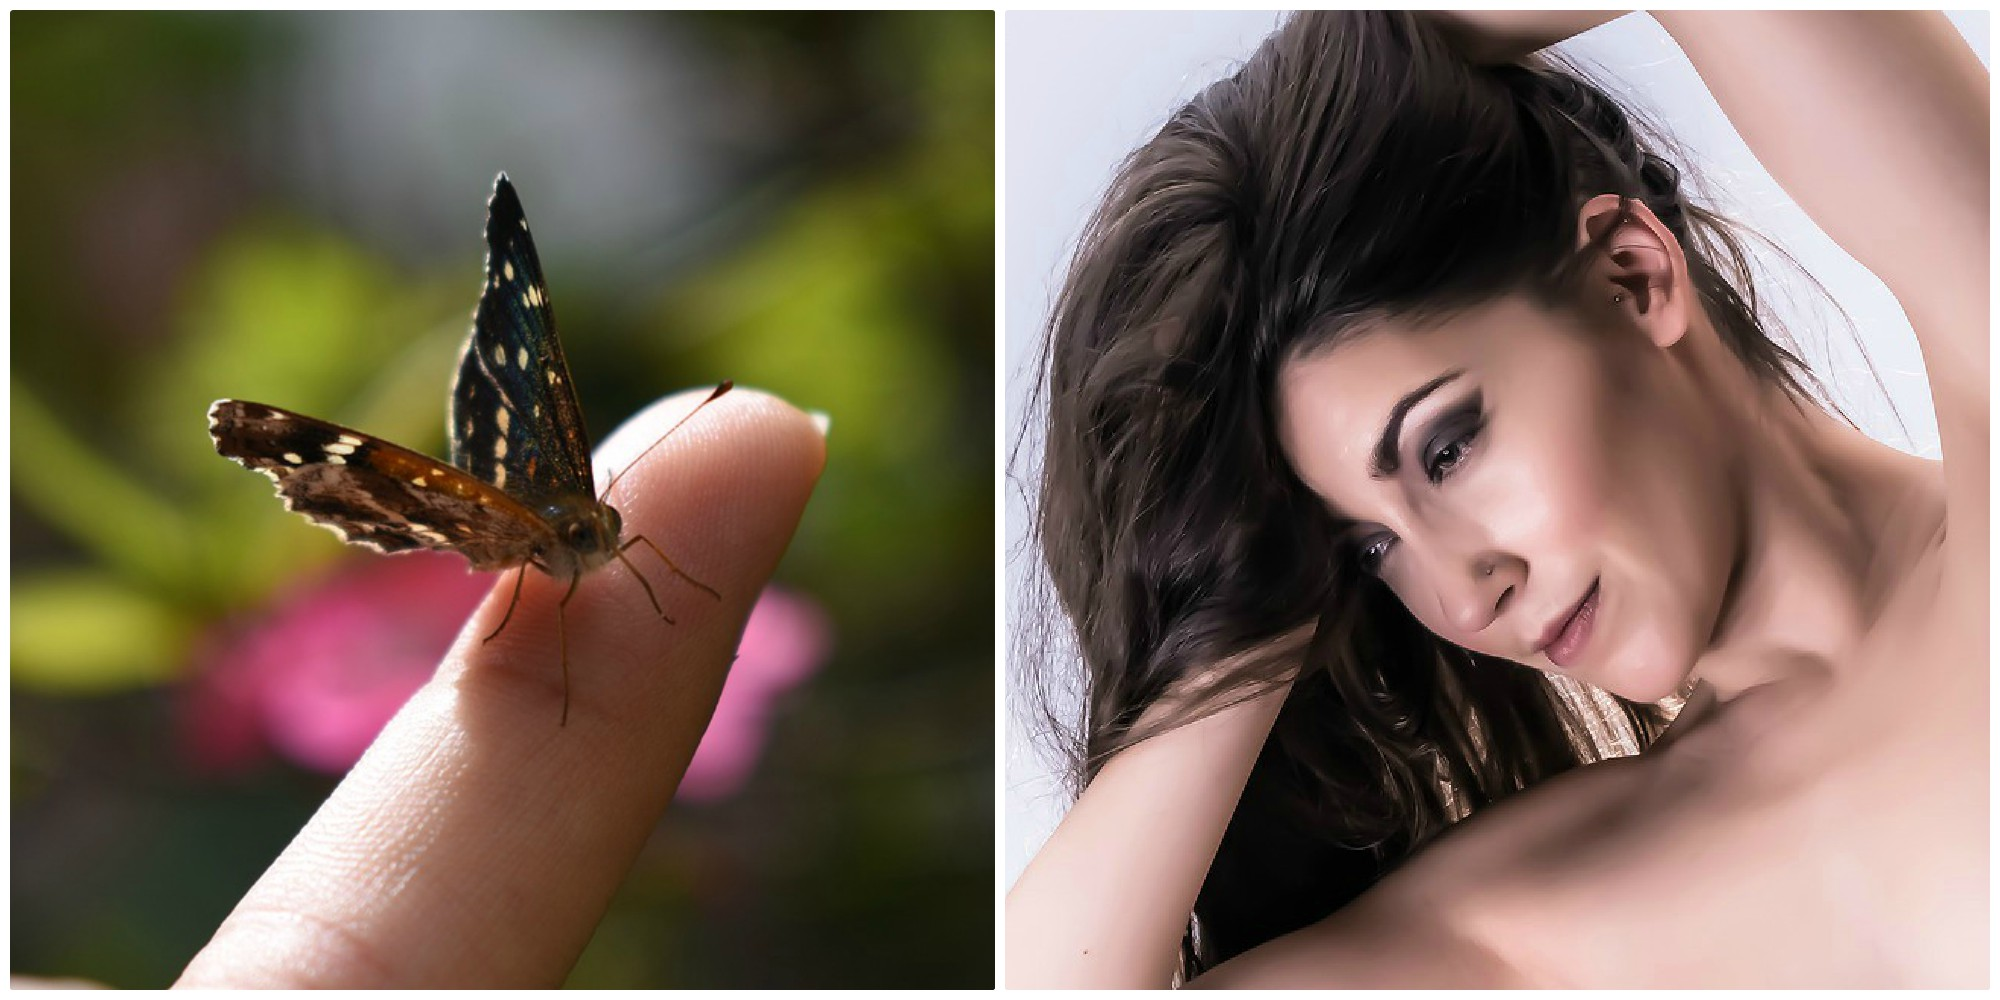 Butterfly on a finger and a long, brown-haired woman lifts her hair.